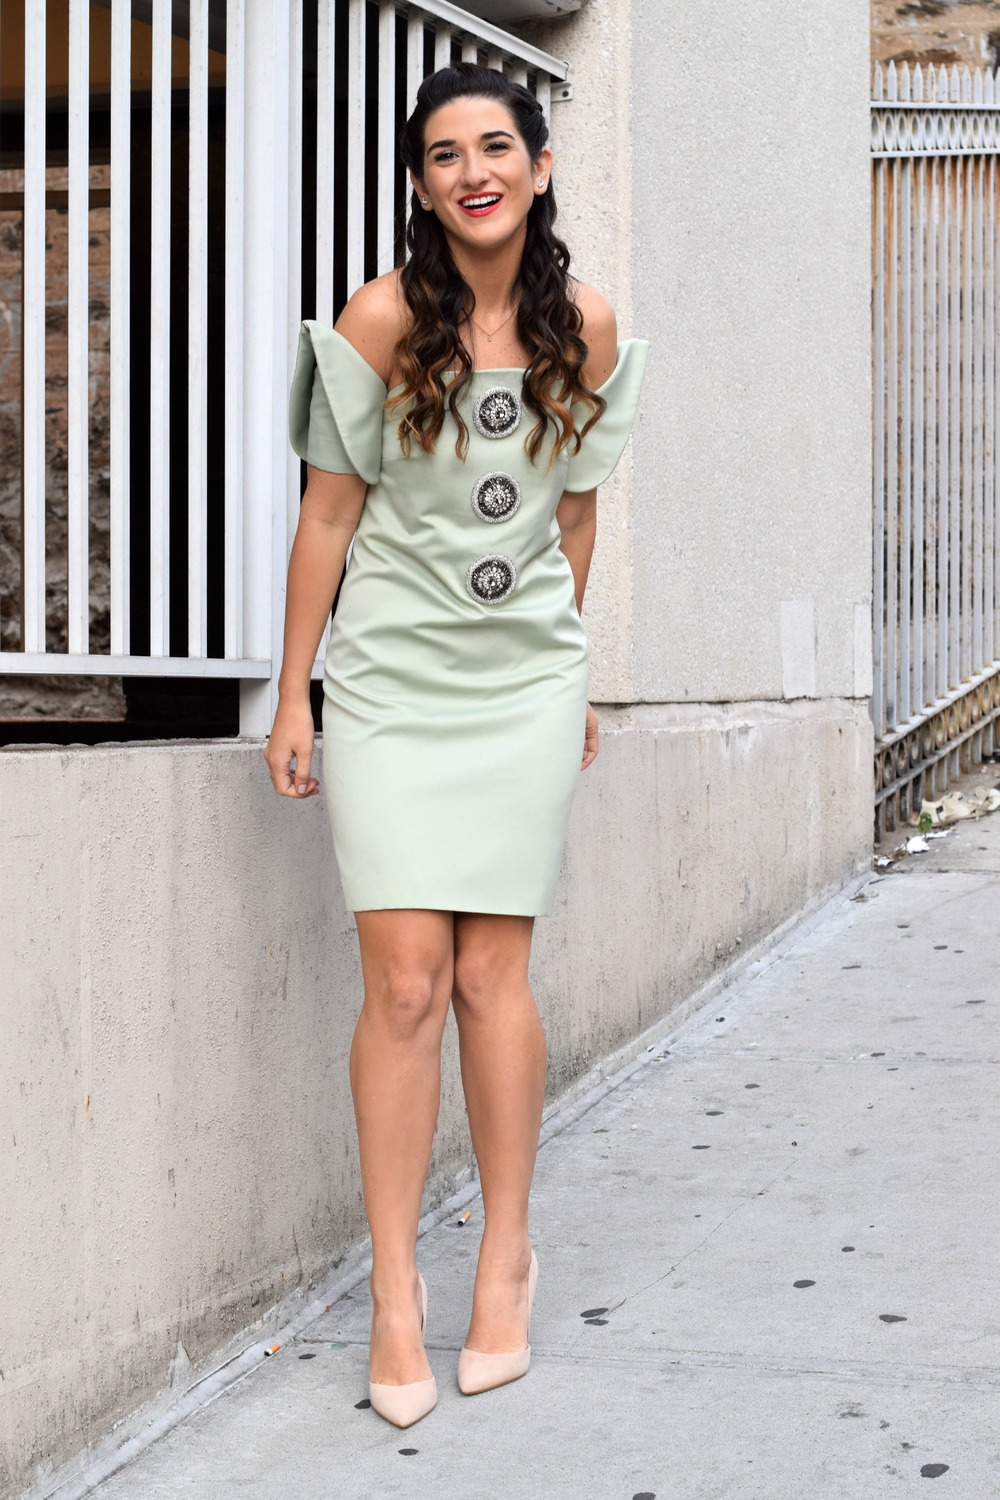 Sage Terno Cocktail Dress Mestiza NY Louboutins & Love Fashion Blog Esther Santer Street Style Blogger NYC Photoshoot Earrings Steve Madden Heels Pumps Hair Brunette Model Girl Women Trendy Outfit Shop OOTD Look Inspiration Pretty Inspo Beauty Braids.JPG